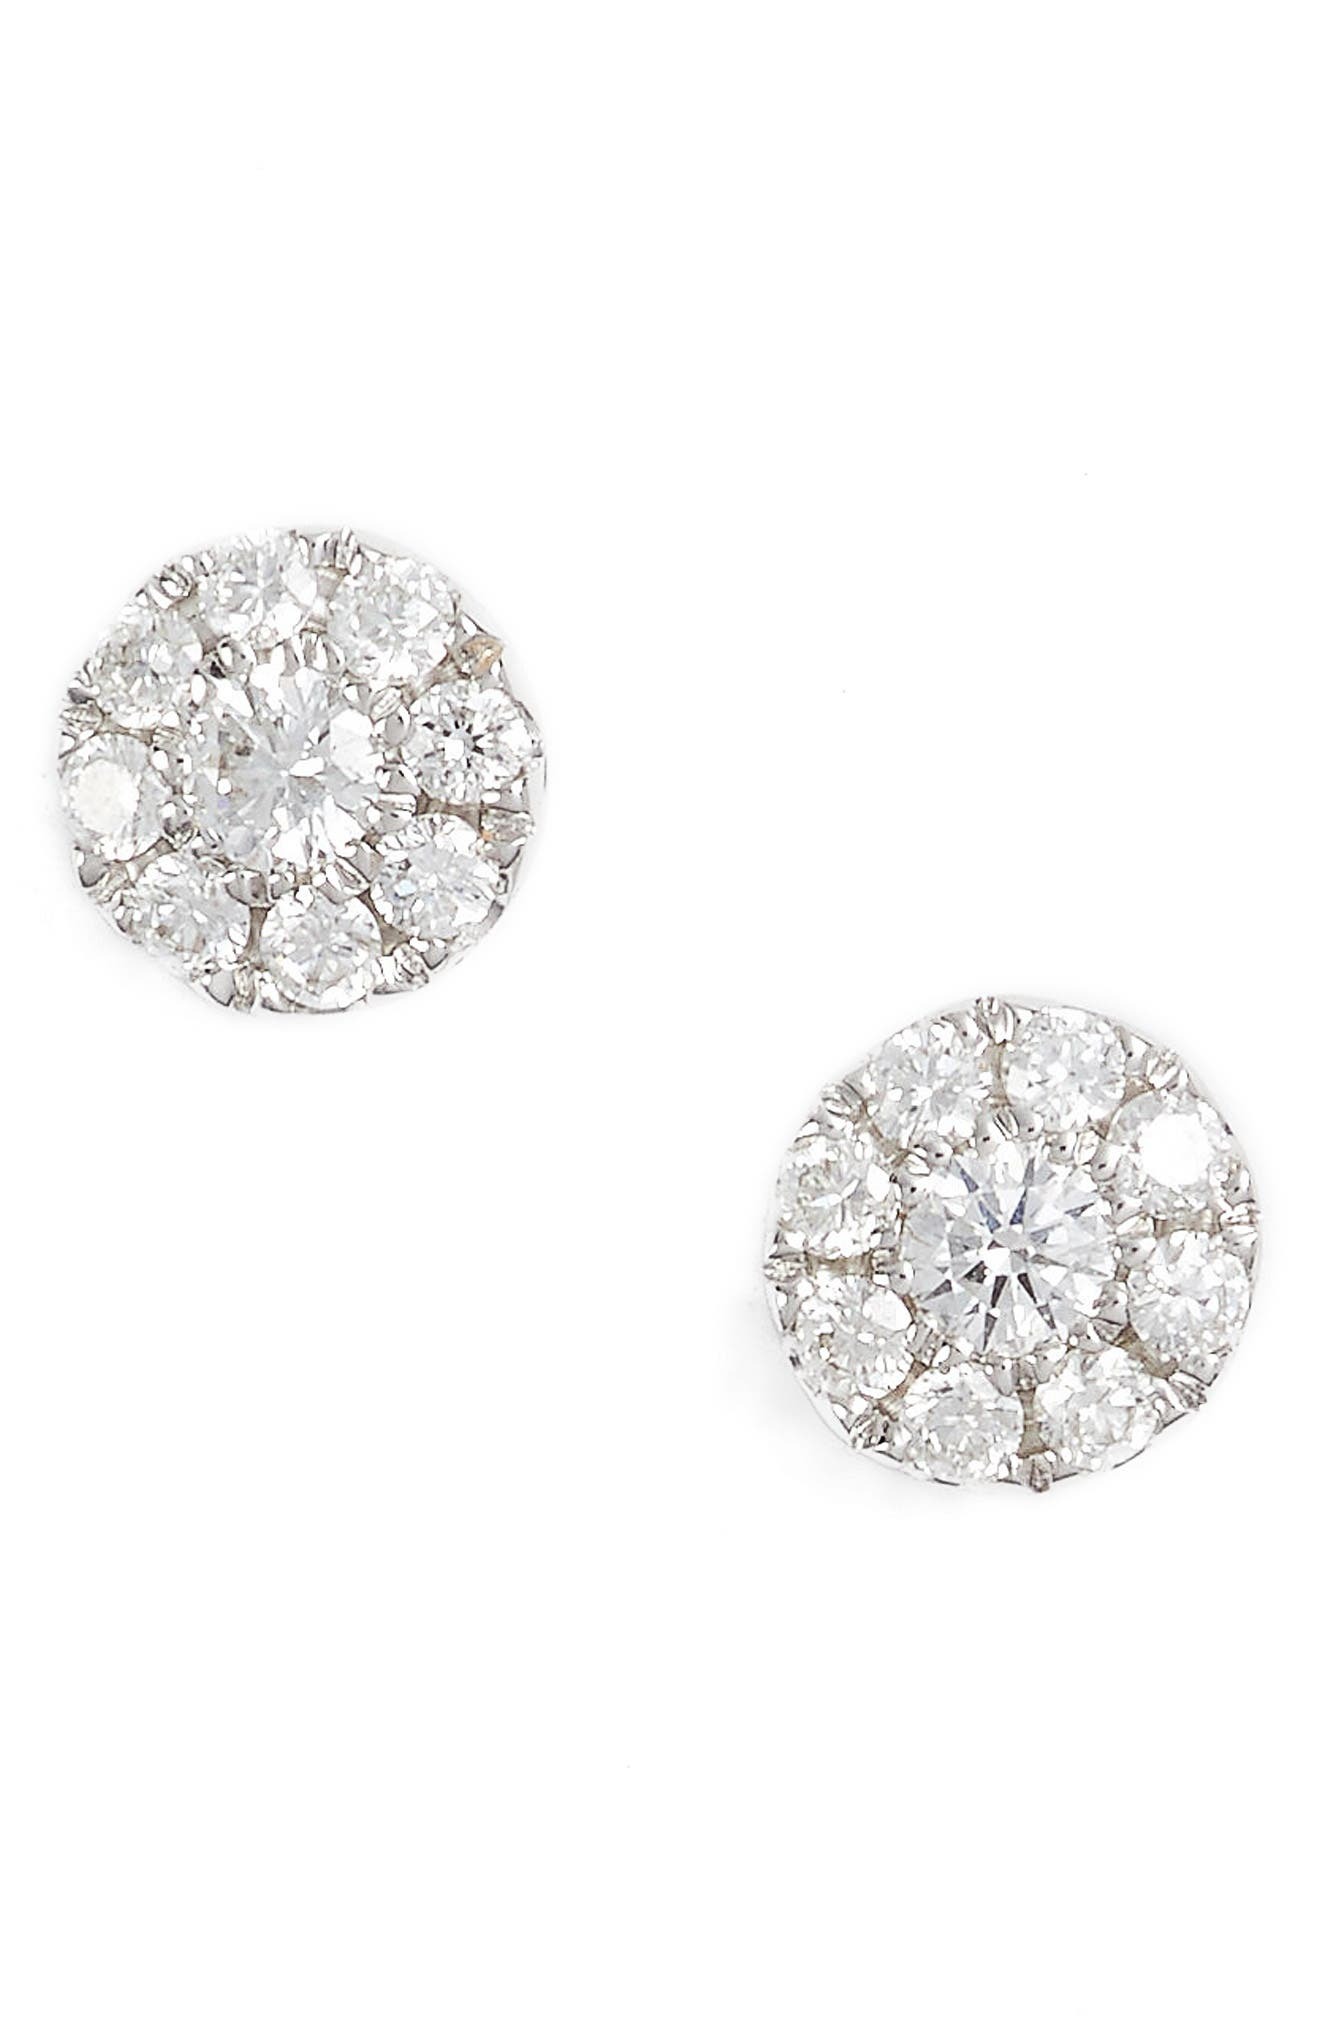 Simple Obsessions Pavé Diamond Stud Earrings,                         Main,                         color, White Gold